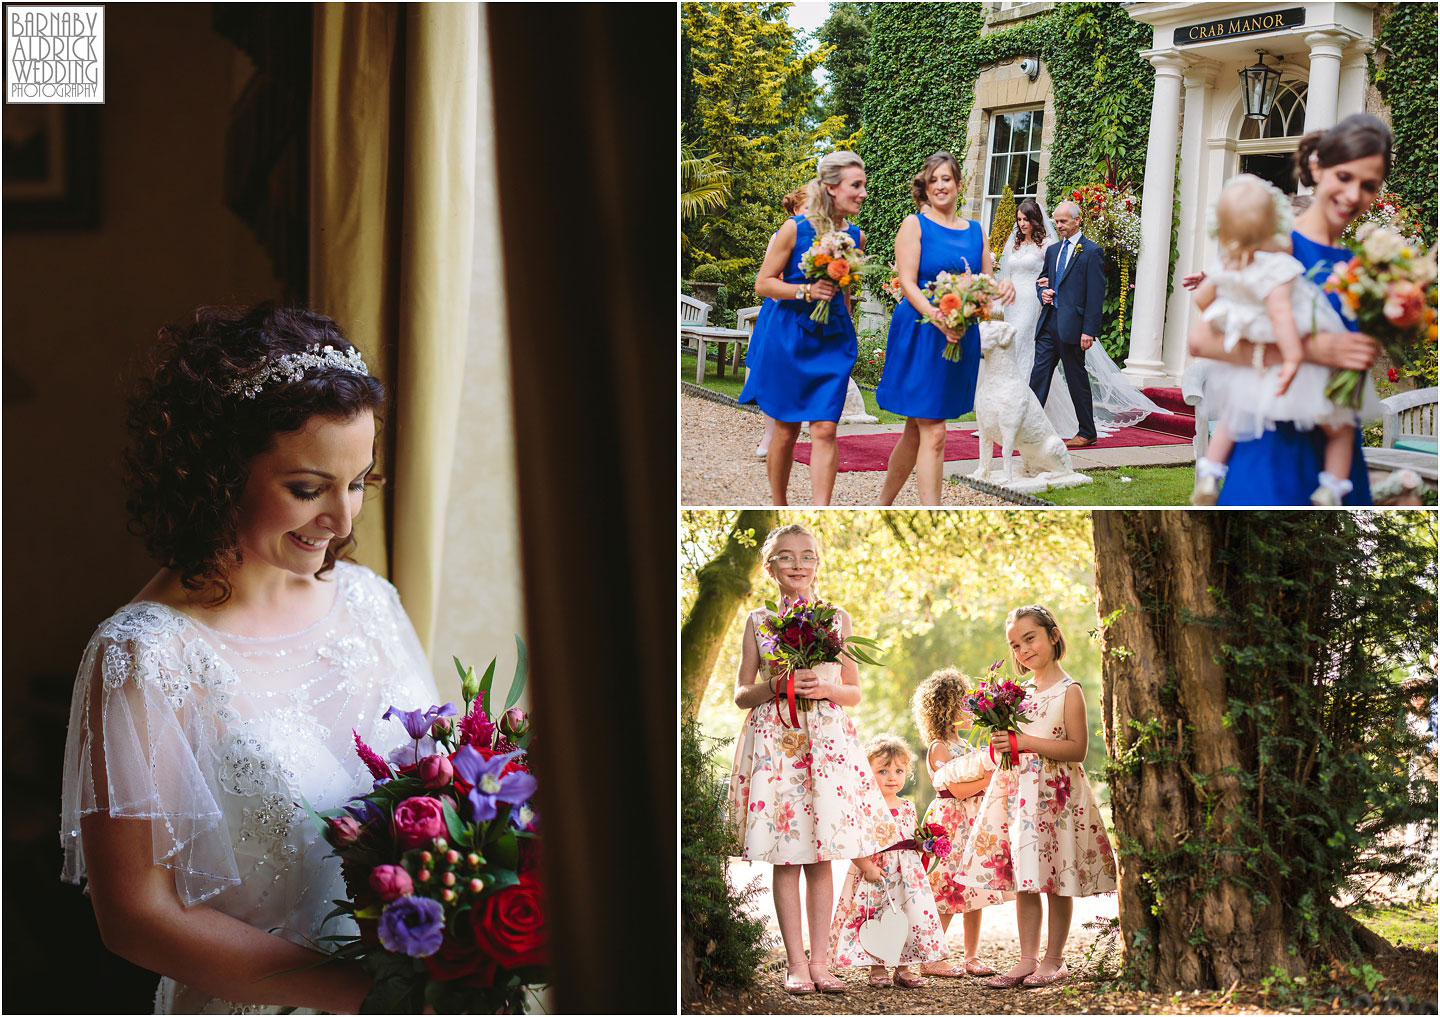 Wedding photo ideas of a Bride and bridesmaids at a civil ceremony at the Crab and Lobster in Thisrk